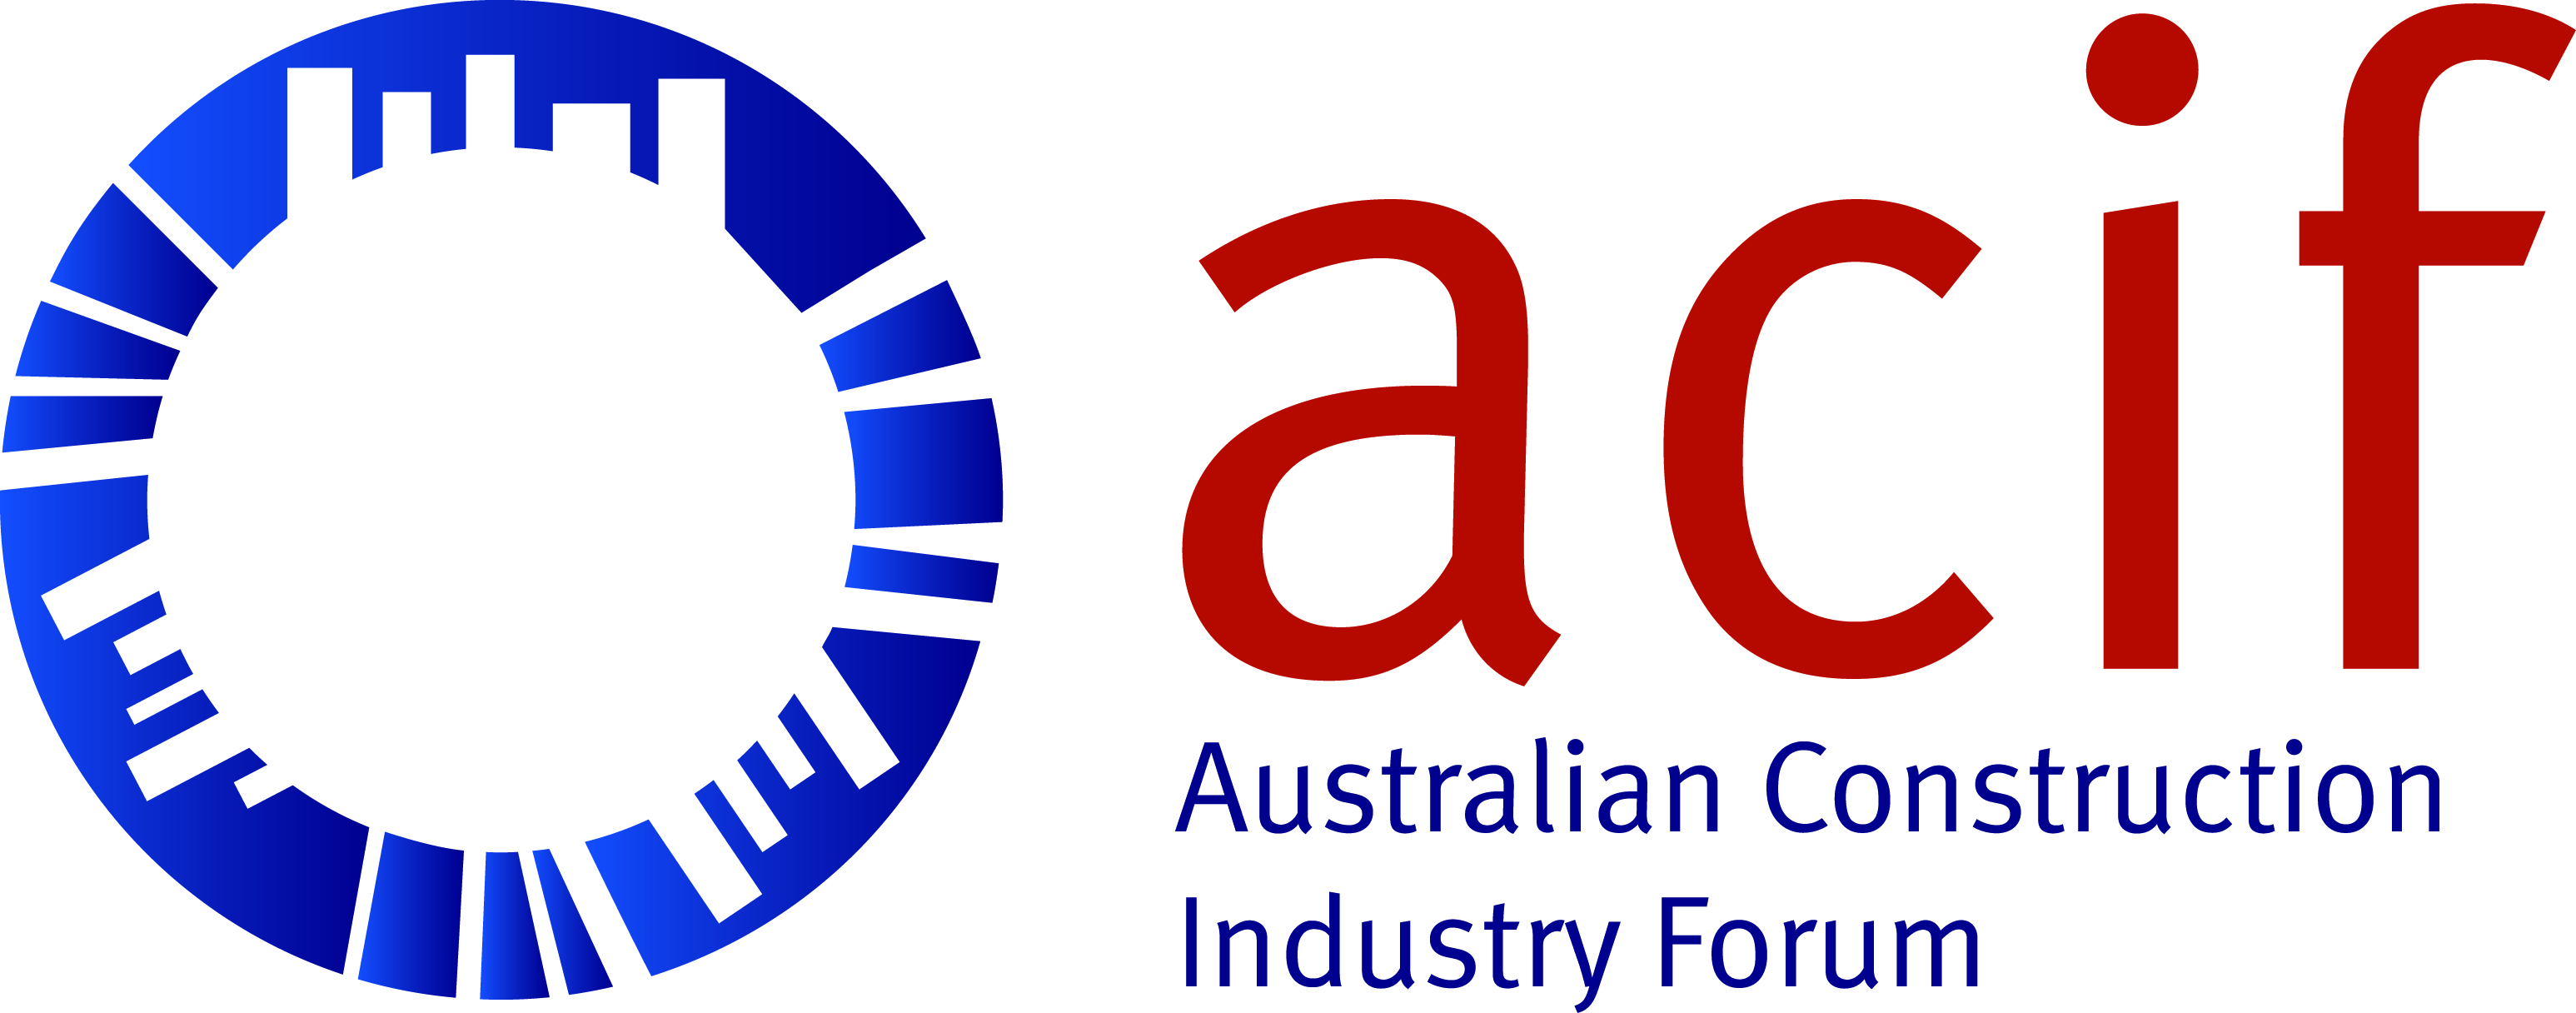 Australian Construction Industry Forum logo